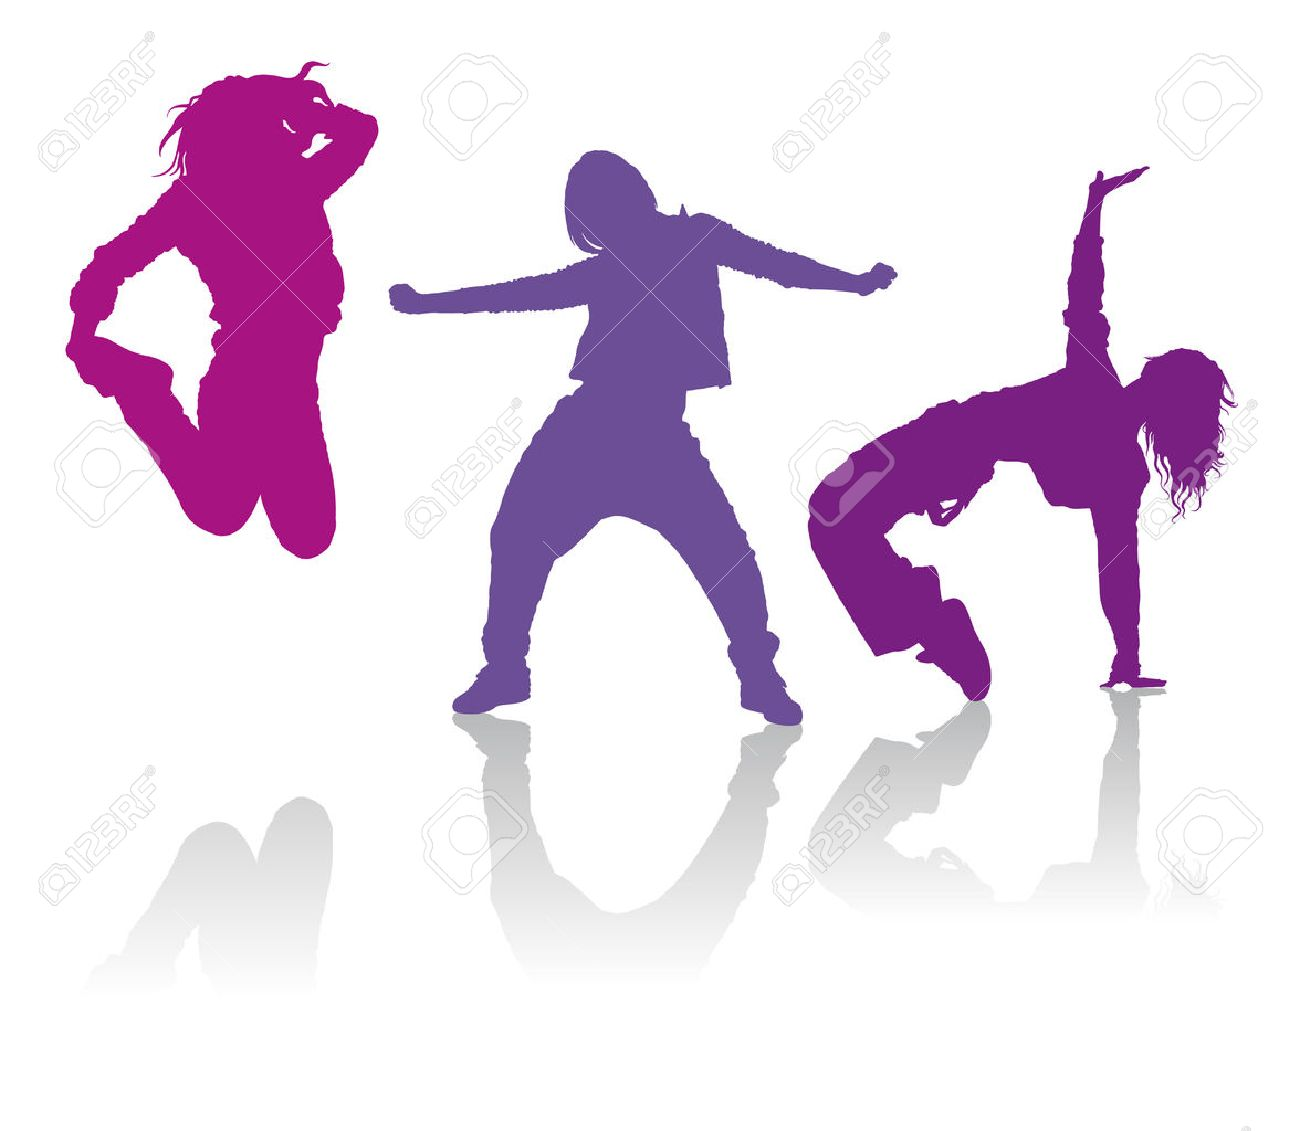 Detailed silhouettes of girls dancing hip.